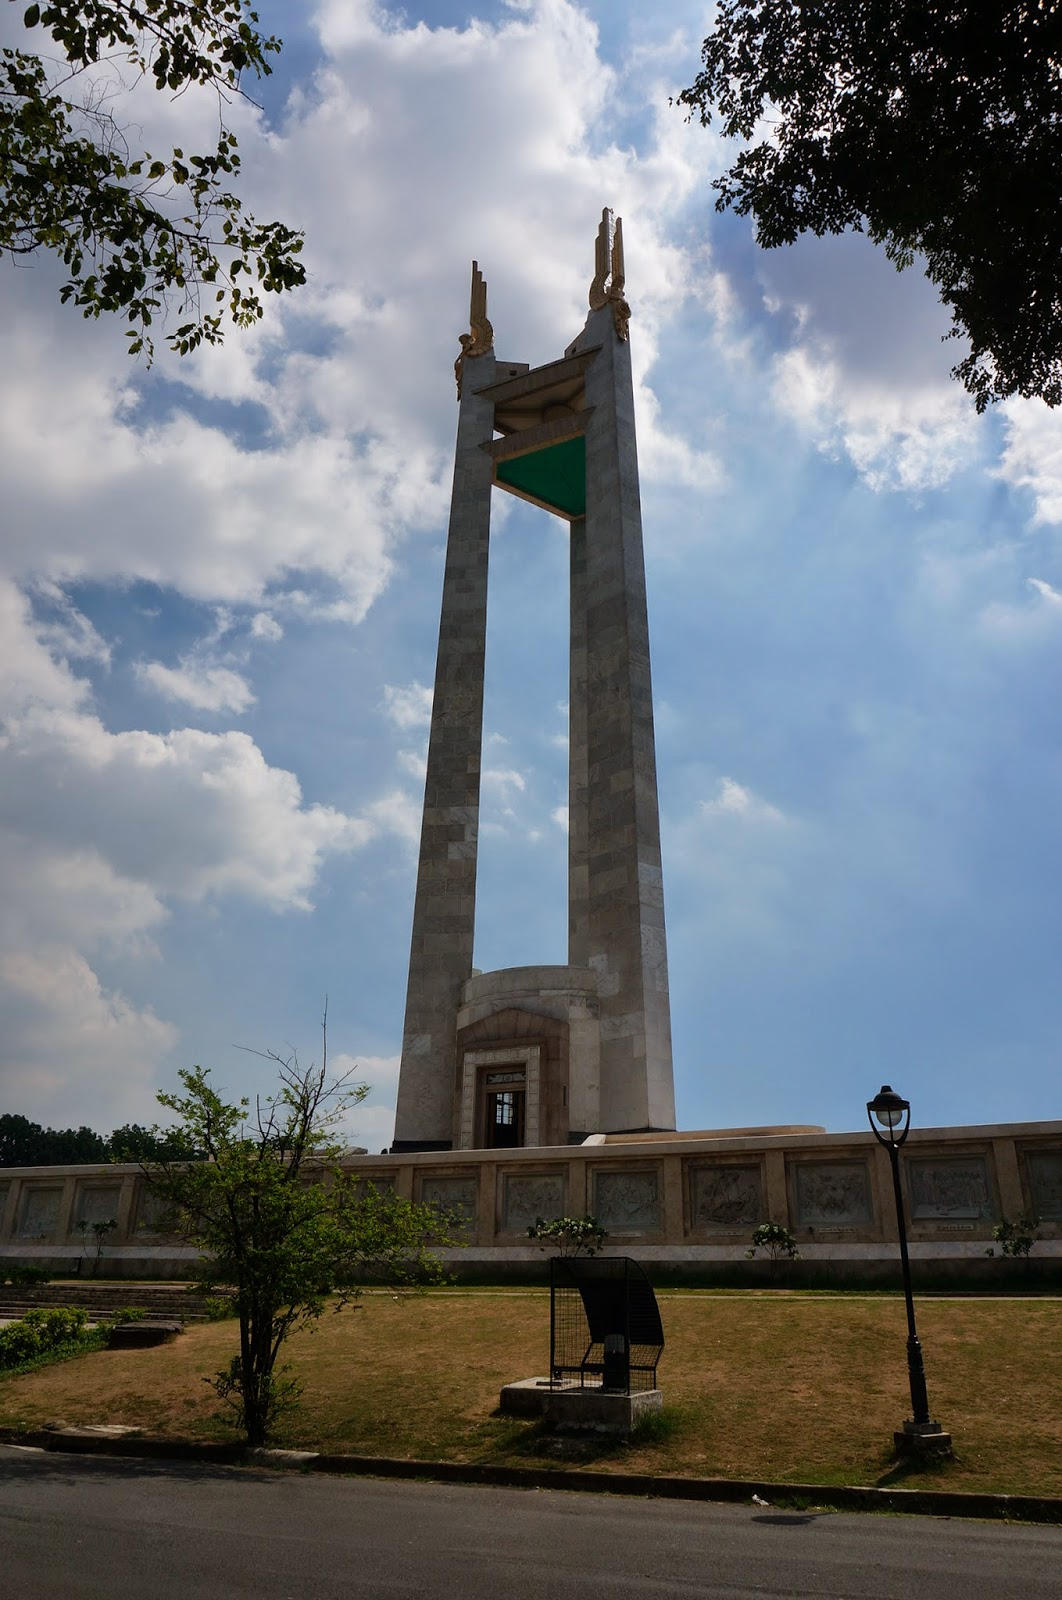 quezon memorial circle essay Overview of the city manila is the capital city of the philippines, an archipelago of more than 7,000 islands in southeast asia, located south of taiwan and hong kong, east of vietnam, north of indonesia, malaysia and singapore.